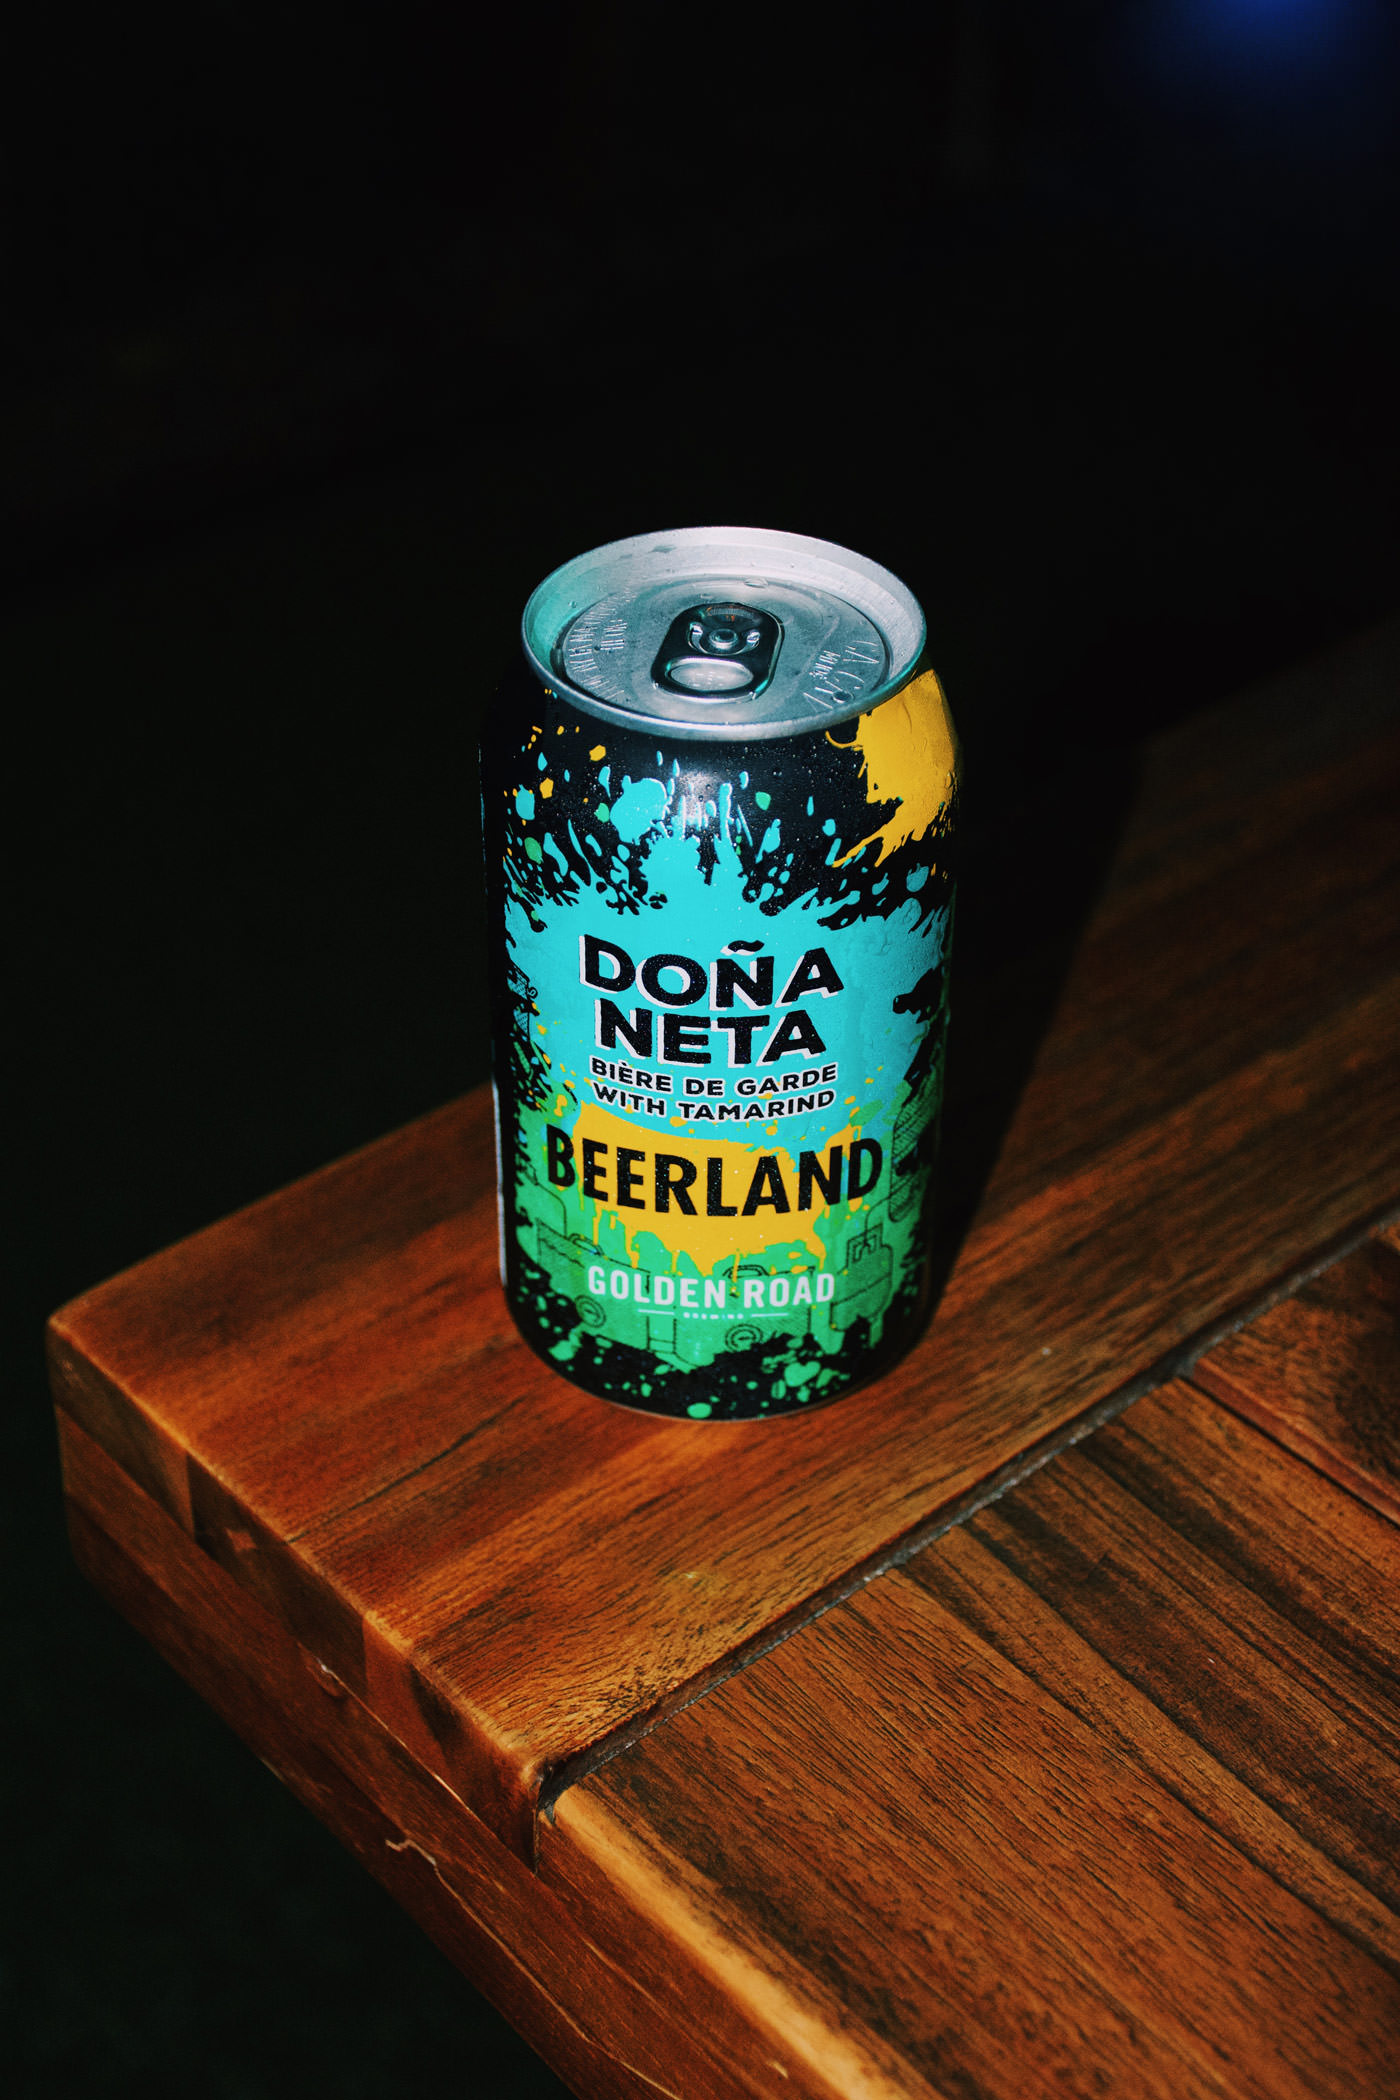 Dona Neta Golden Road Beer winner of Beerland on Viceland.